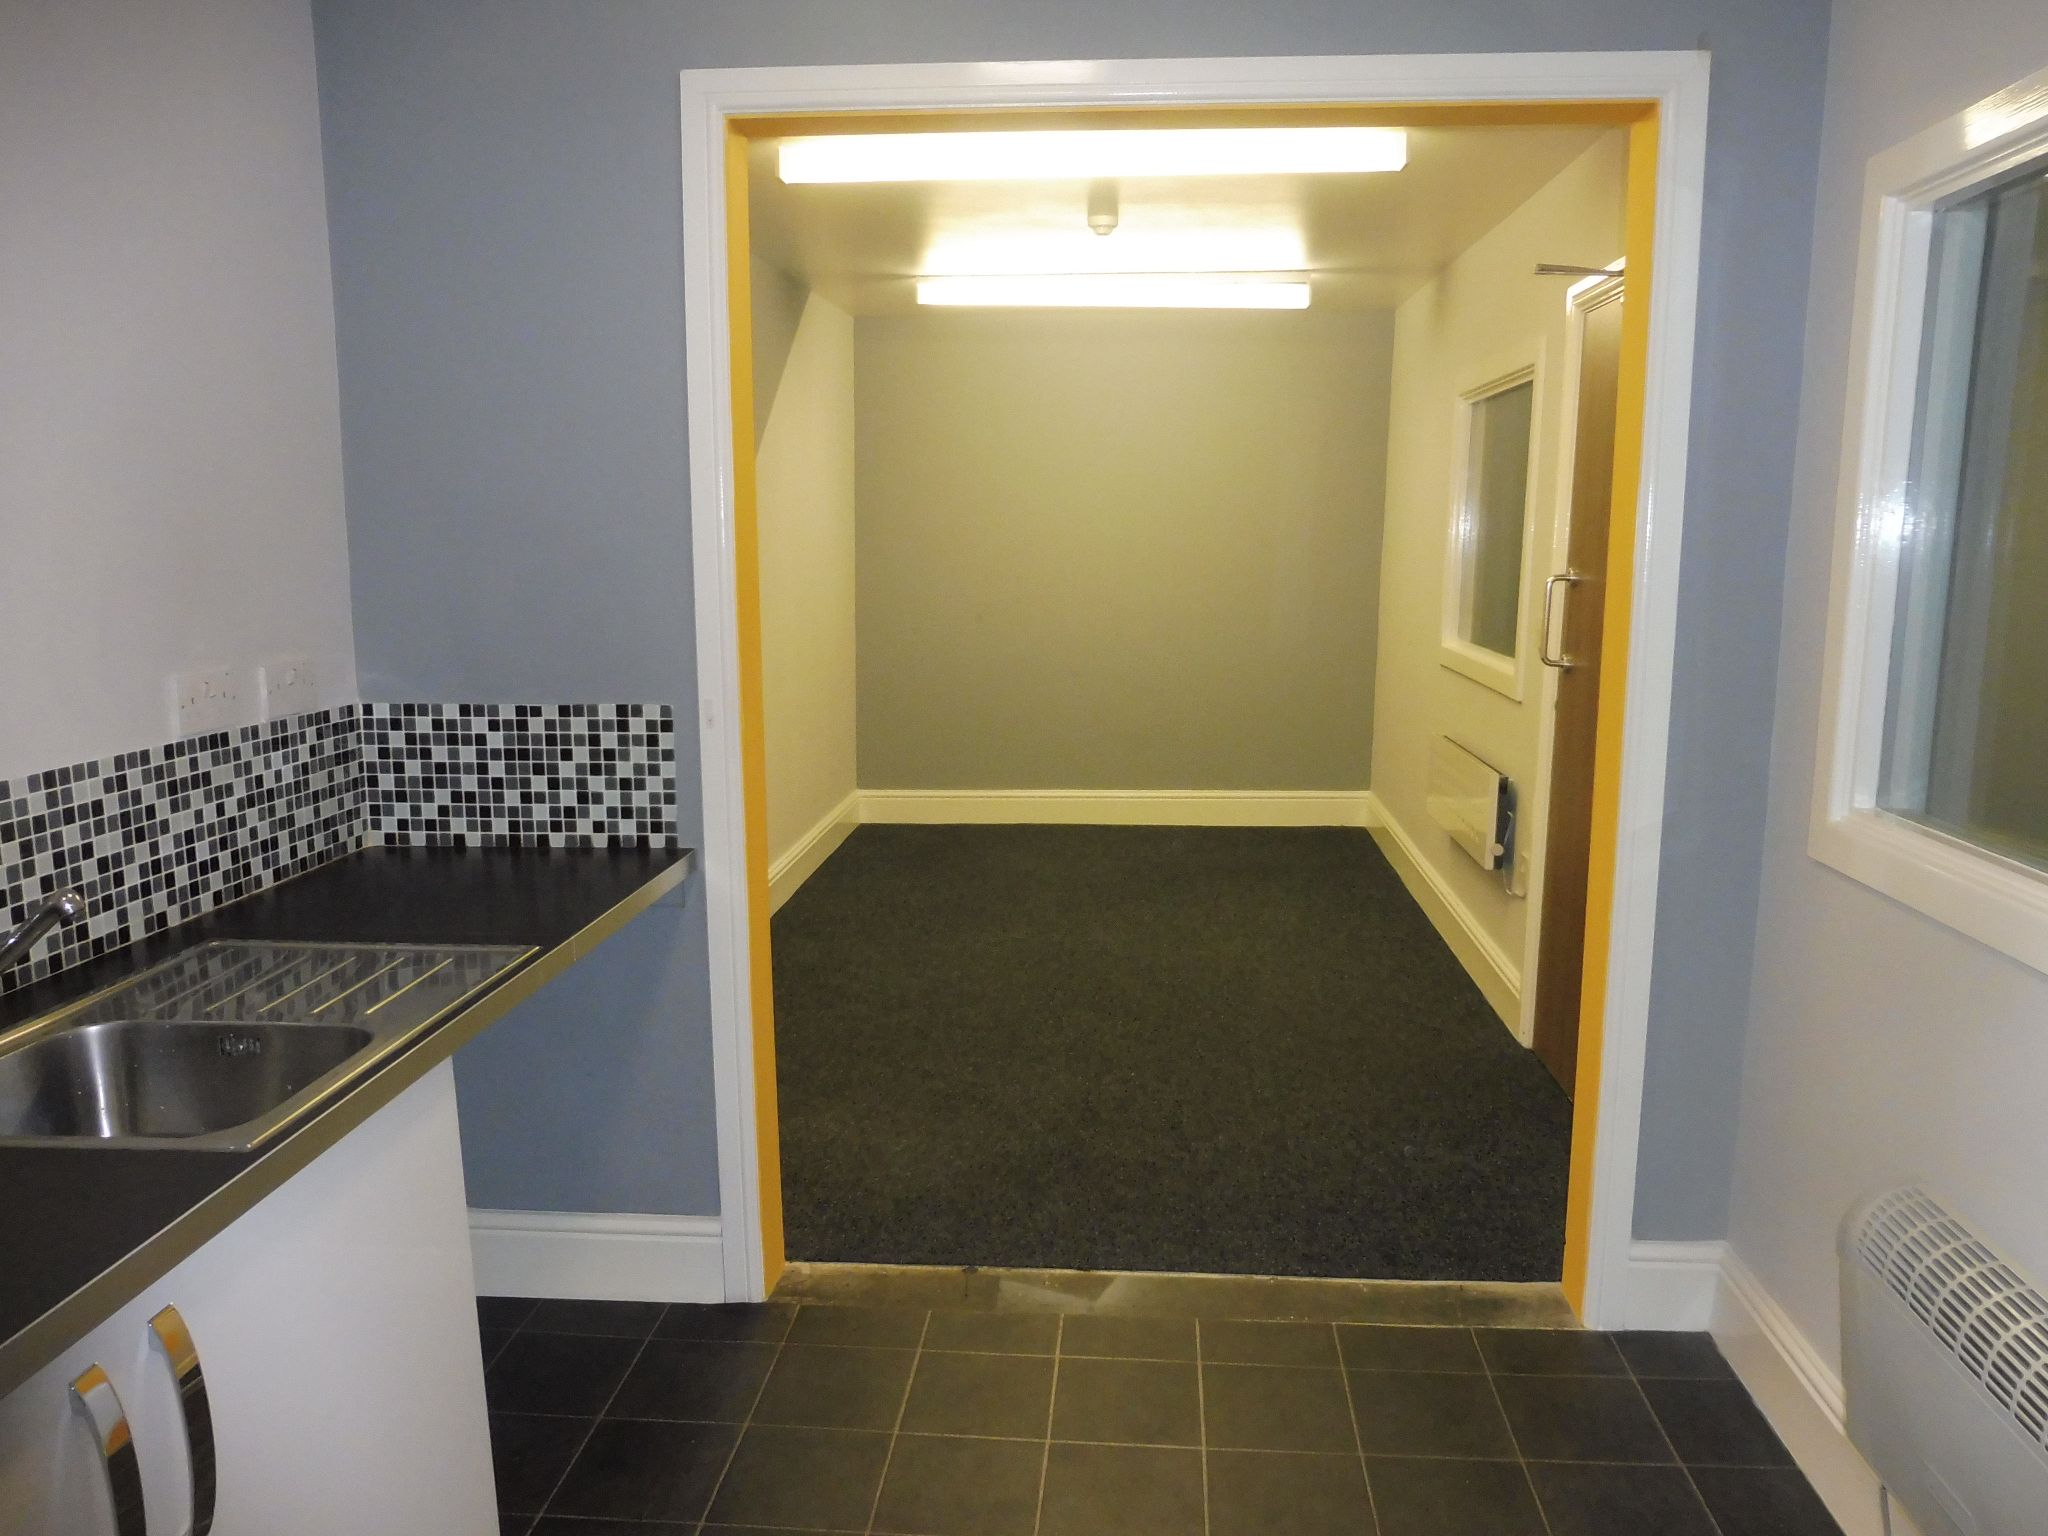 Industrial Units For Sale in Brighouse - Kitchen and restroom.